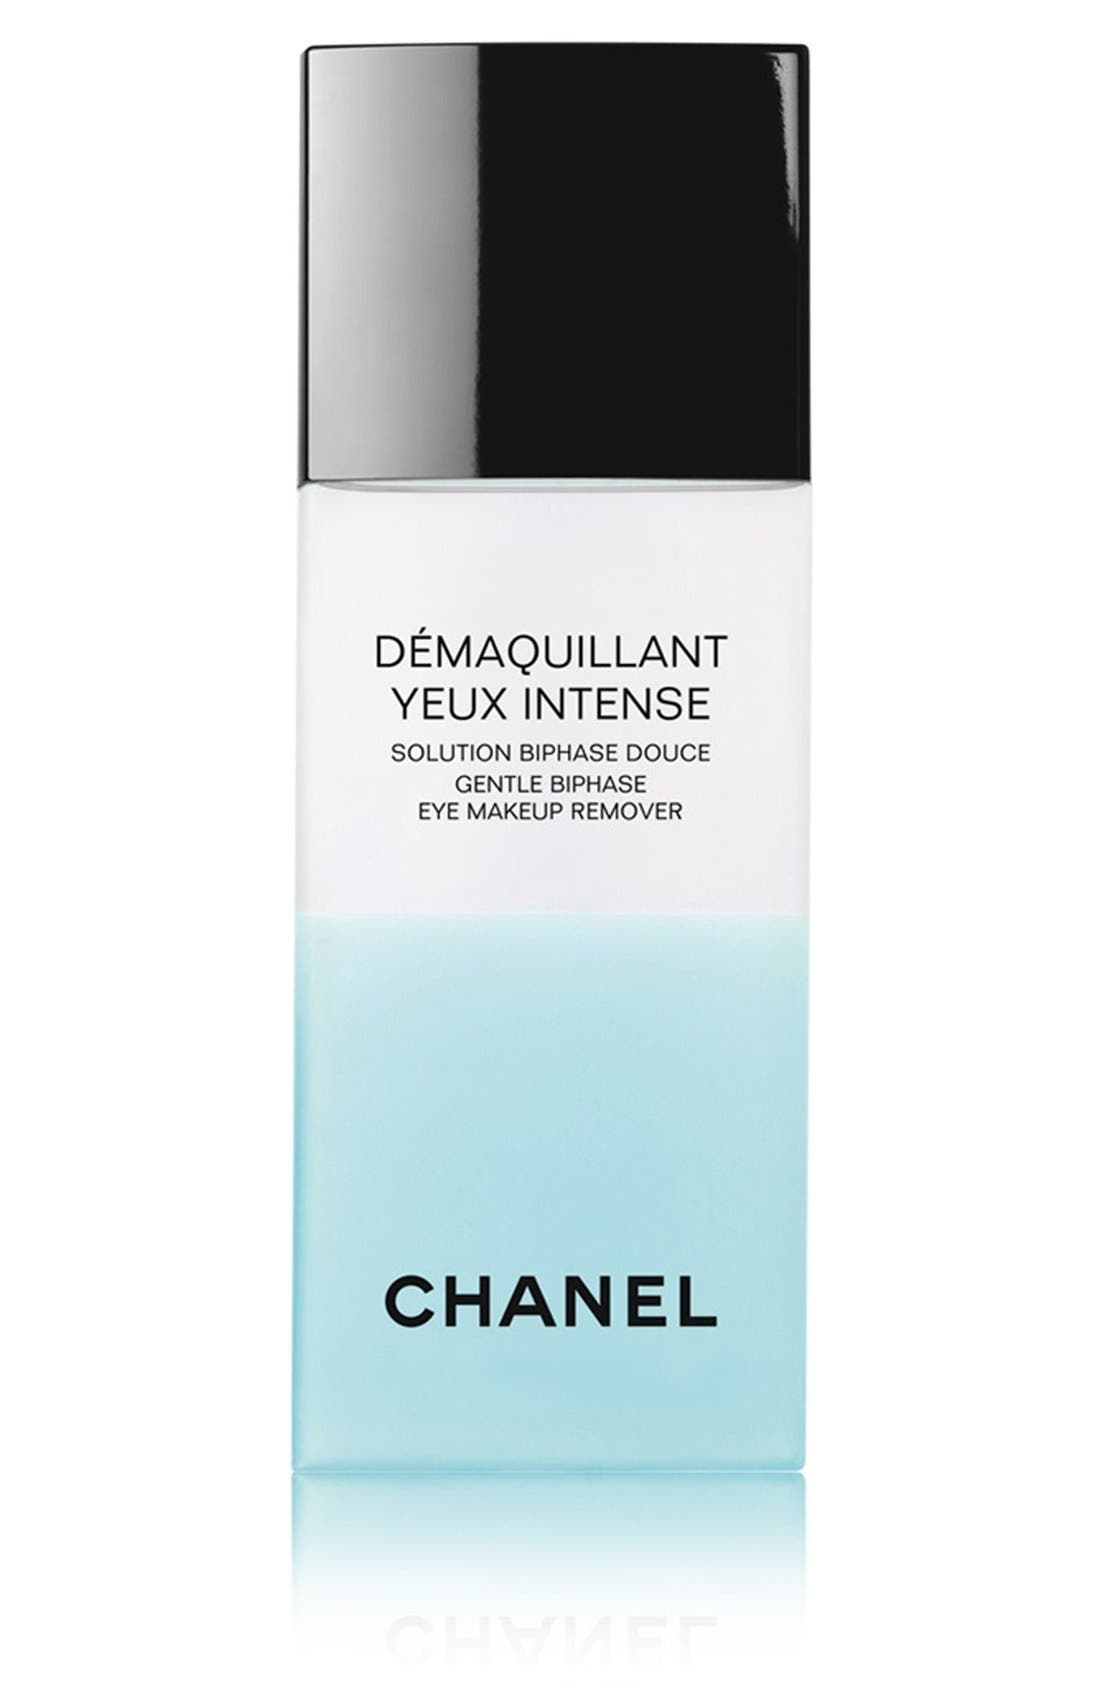 CHANEL DÉMAQUILLANT YEUX INTENSE<br />Gentle Bi-Phase Eye Makeup Remover, Main, color, NO COLOR